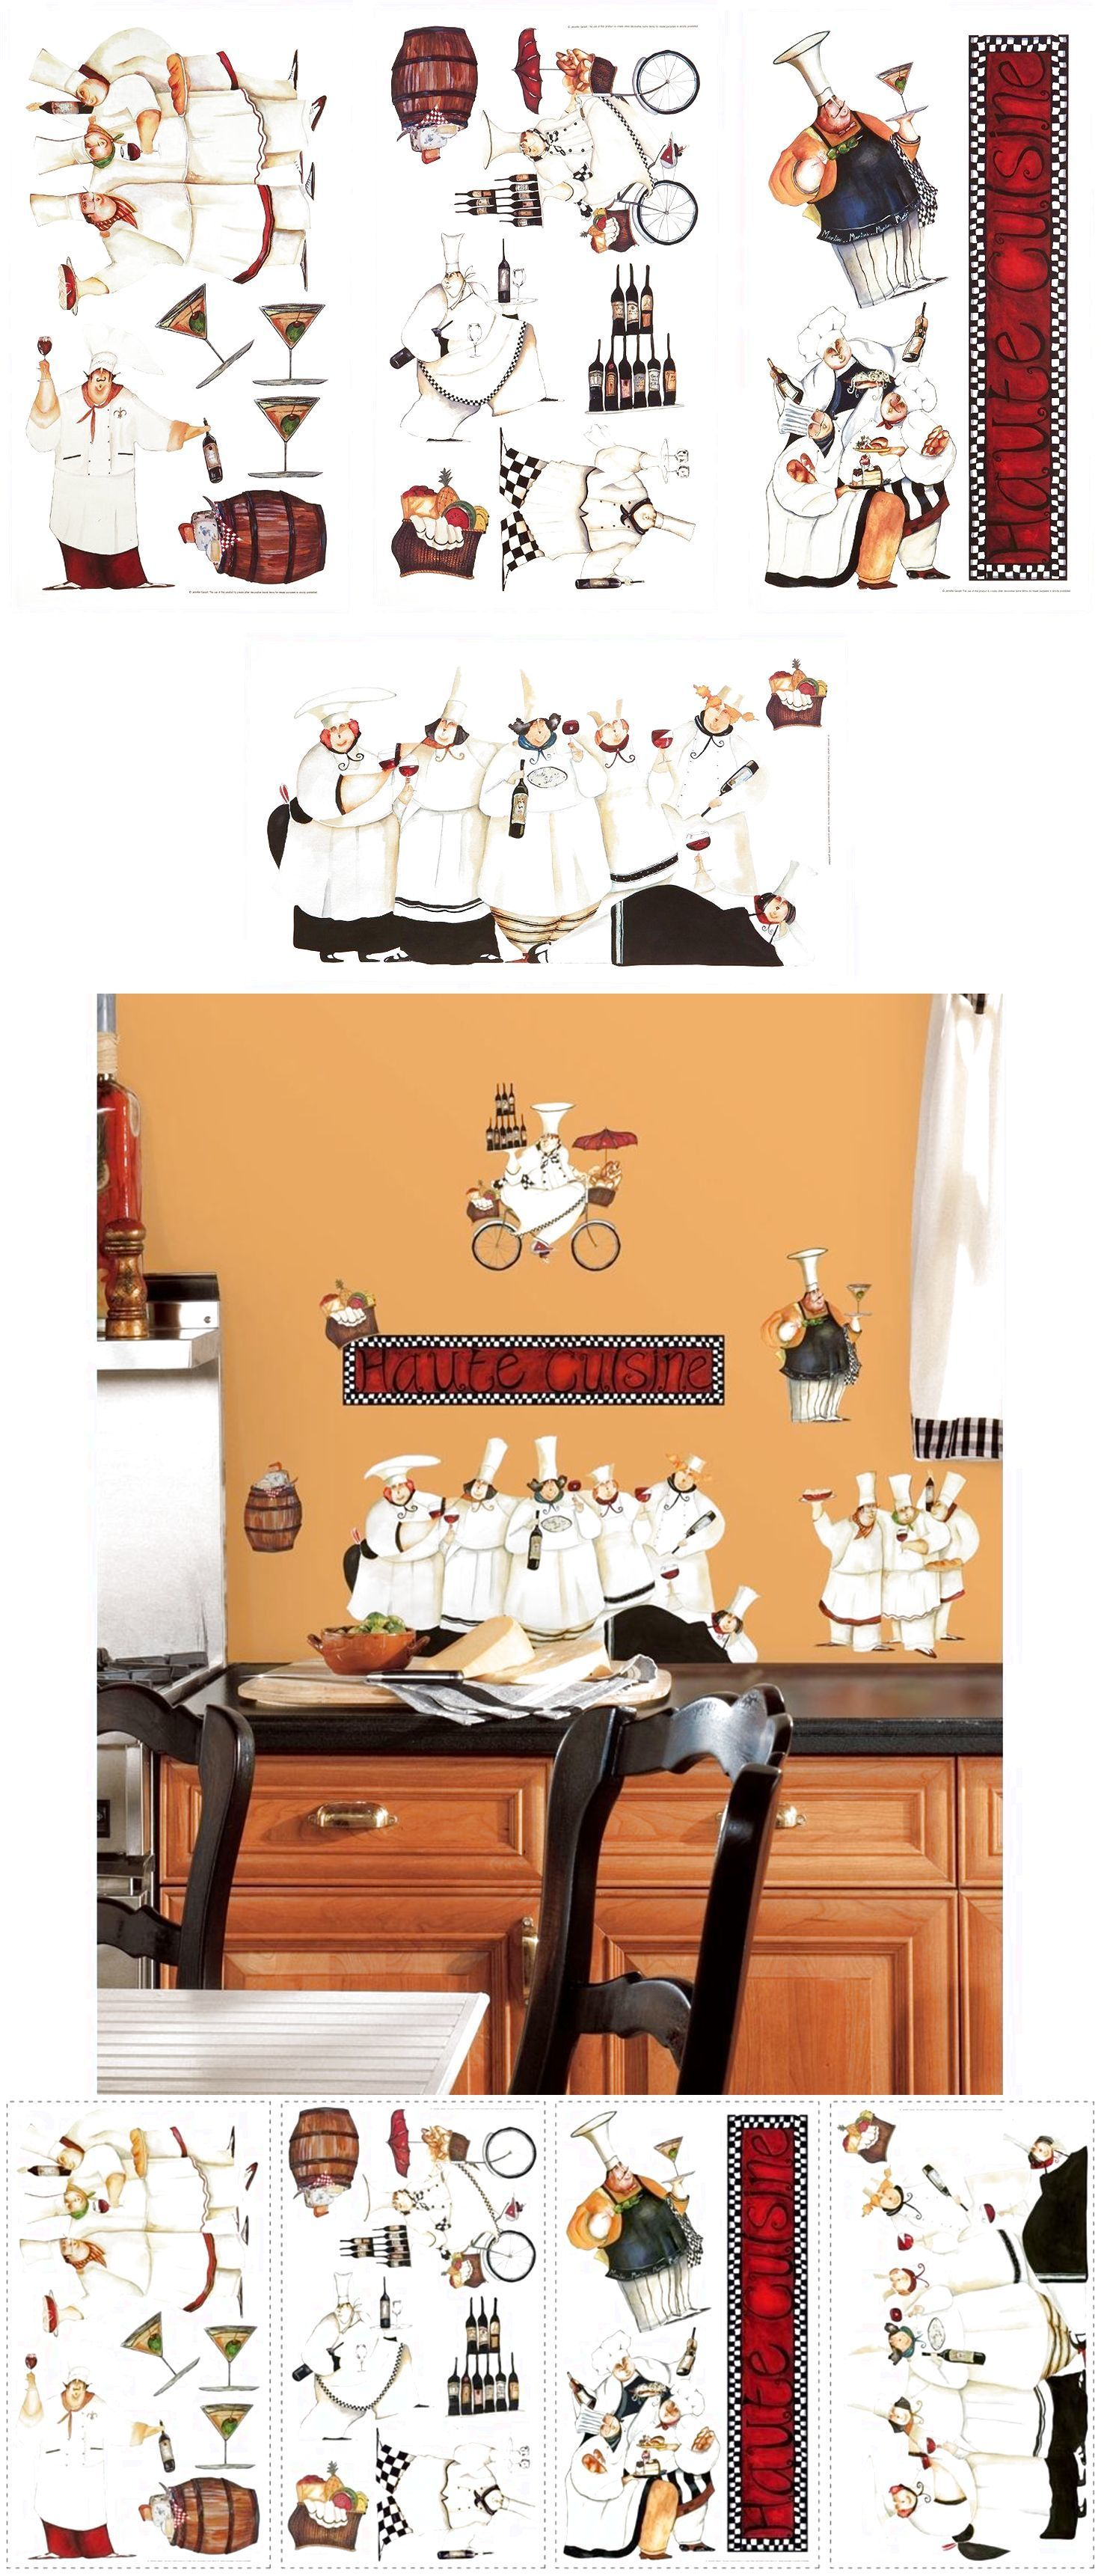 Chefs wall stickers room kitchen decor mural cooking cook cafe